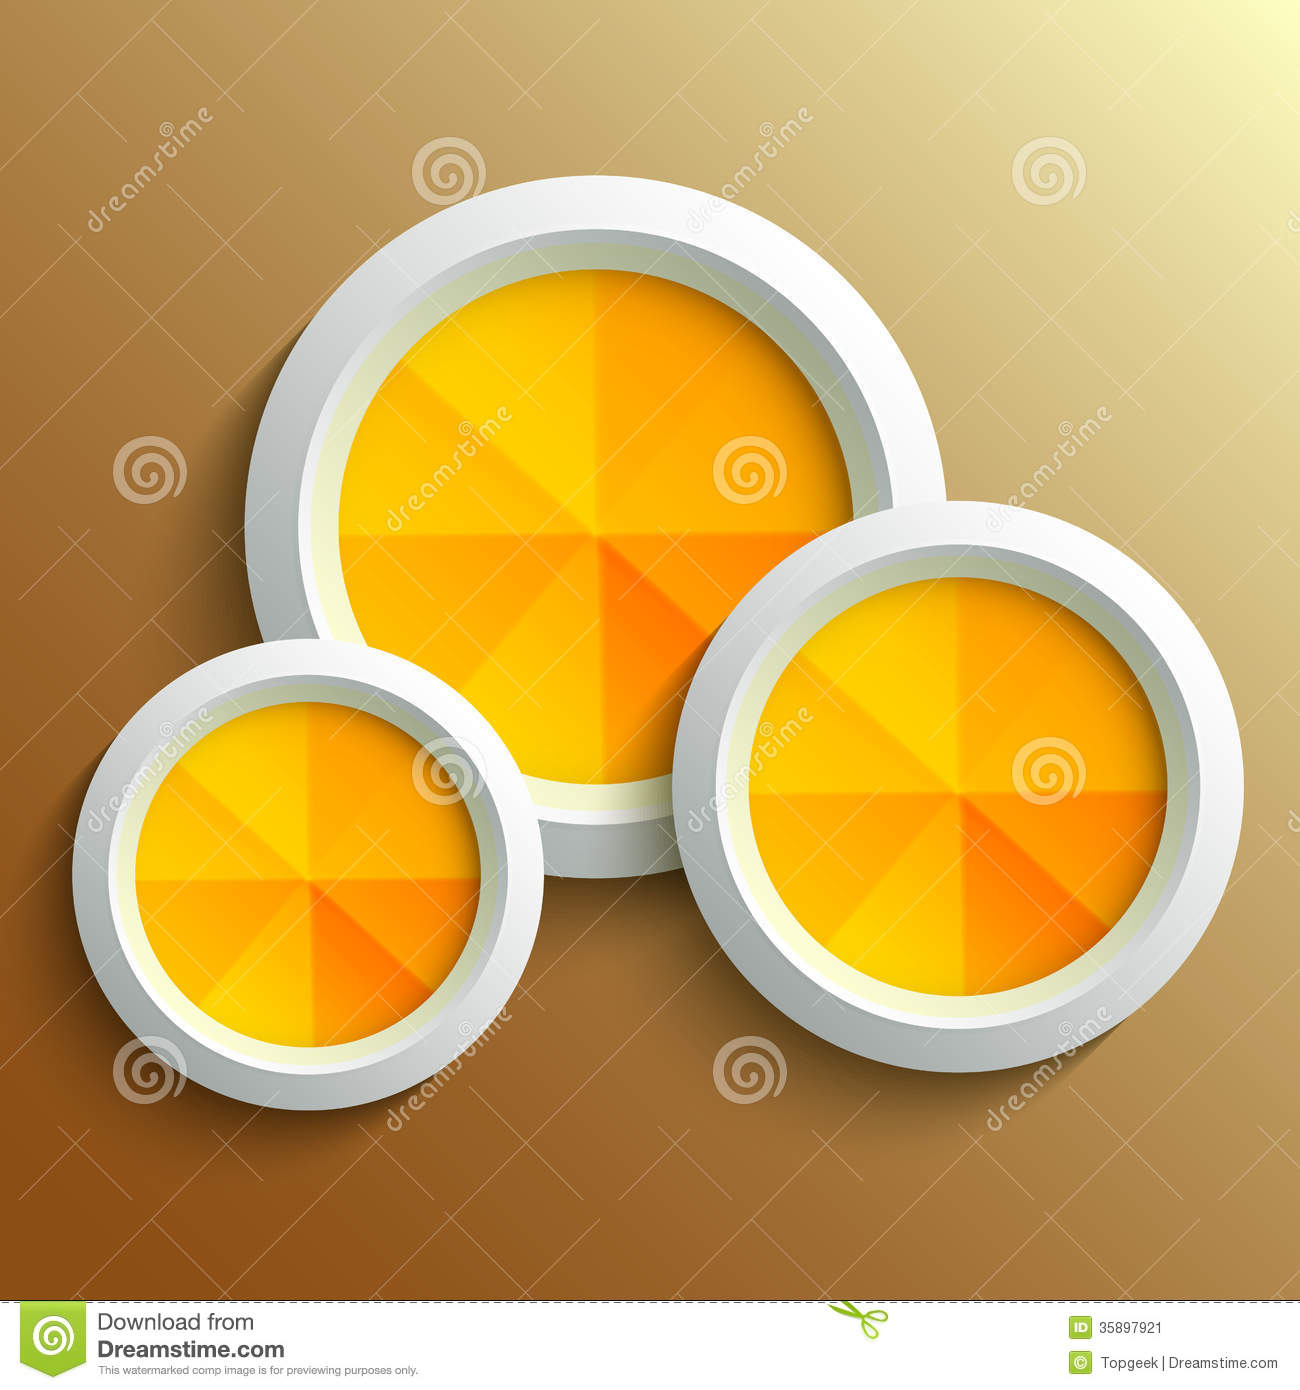 Abstract 3d Circle Stock Vector. Illustration Of Icon